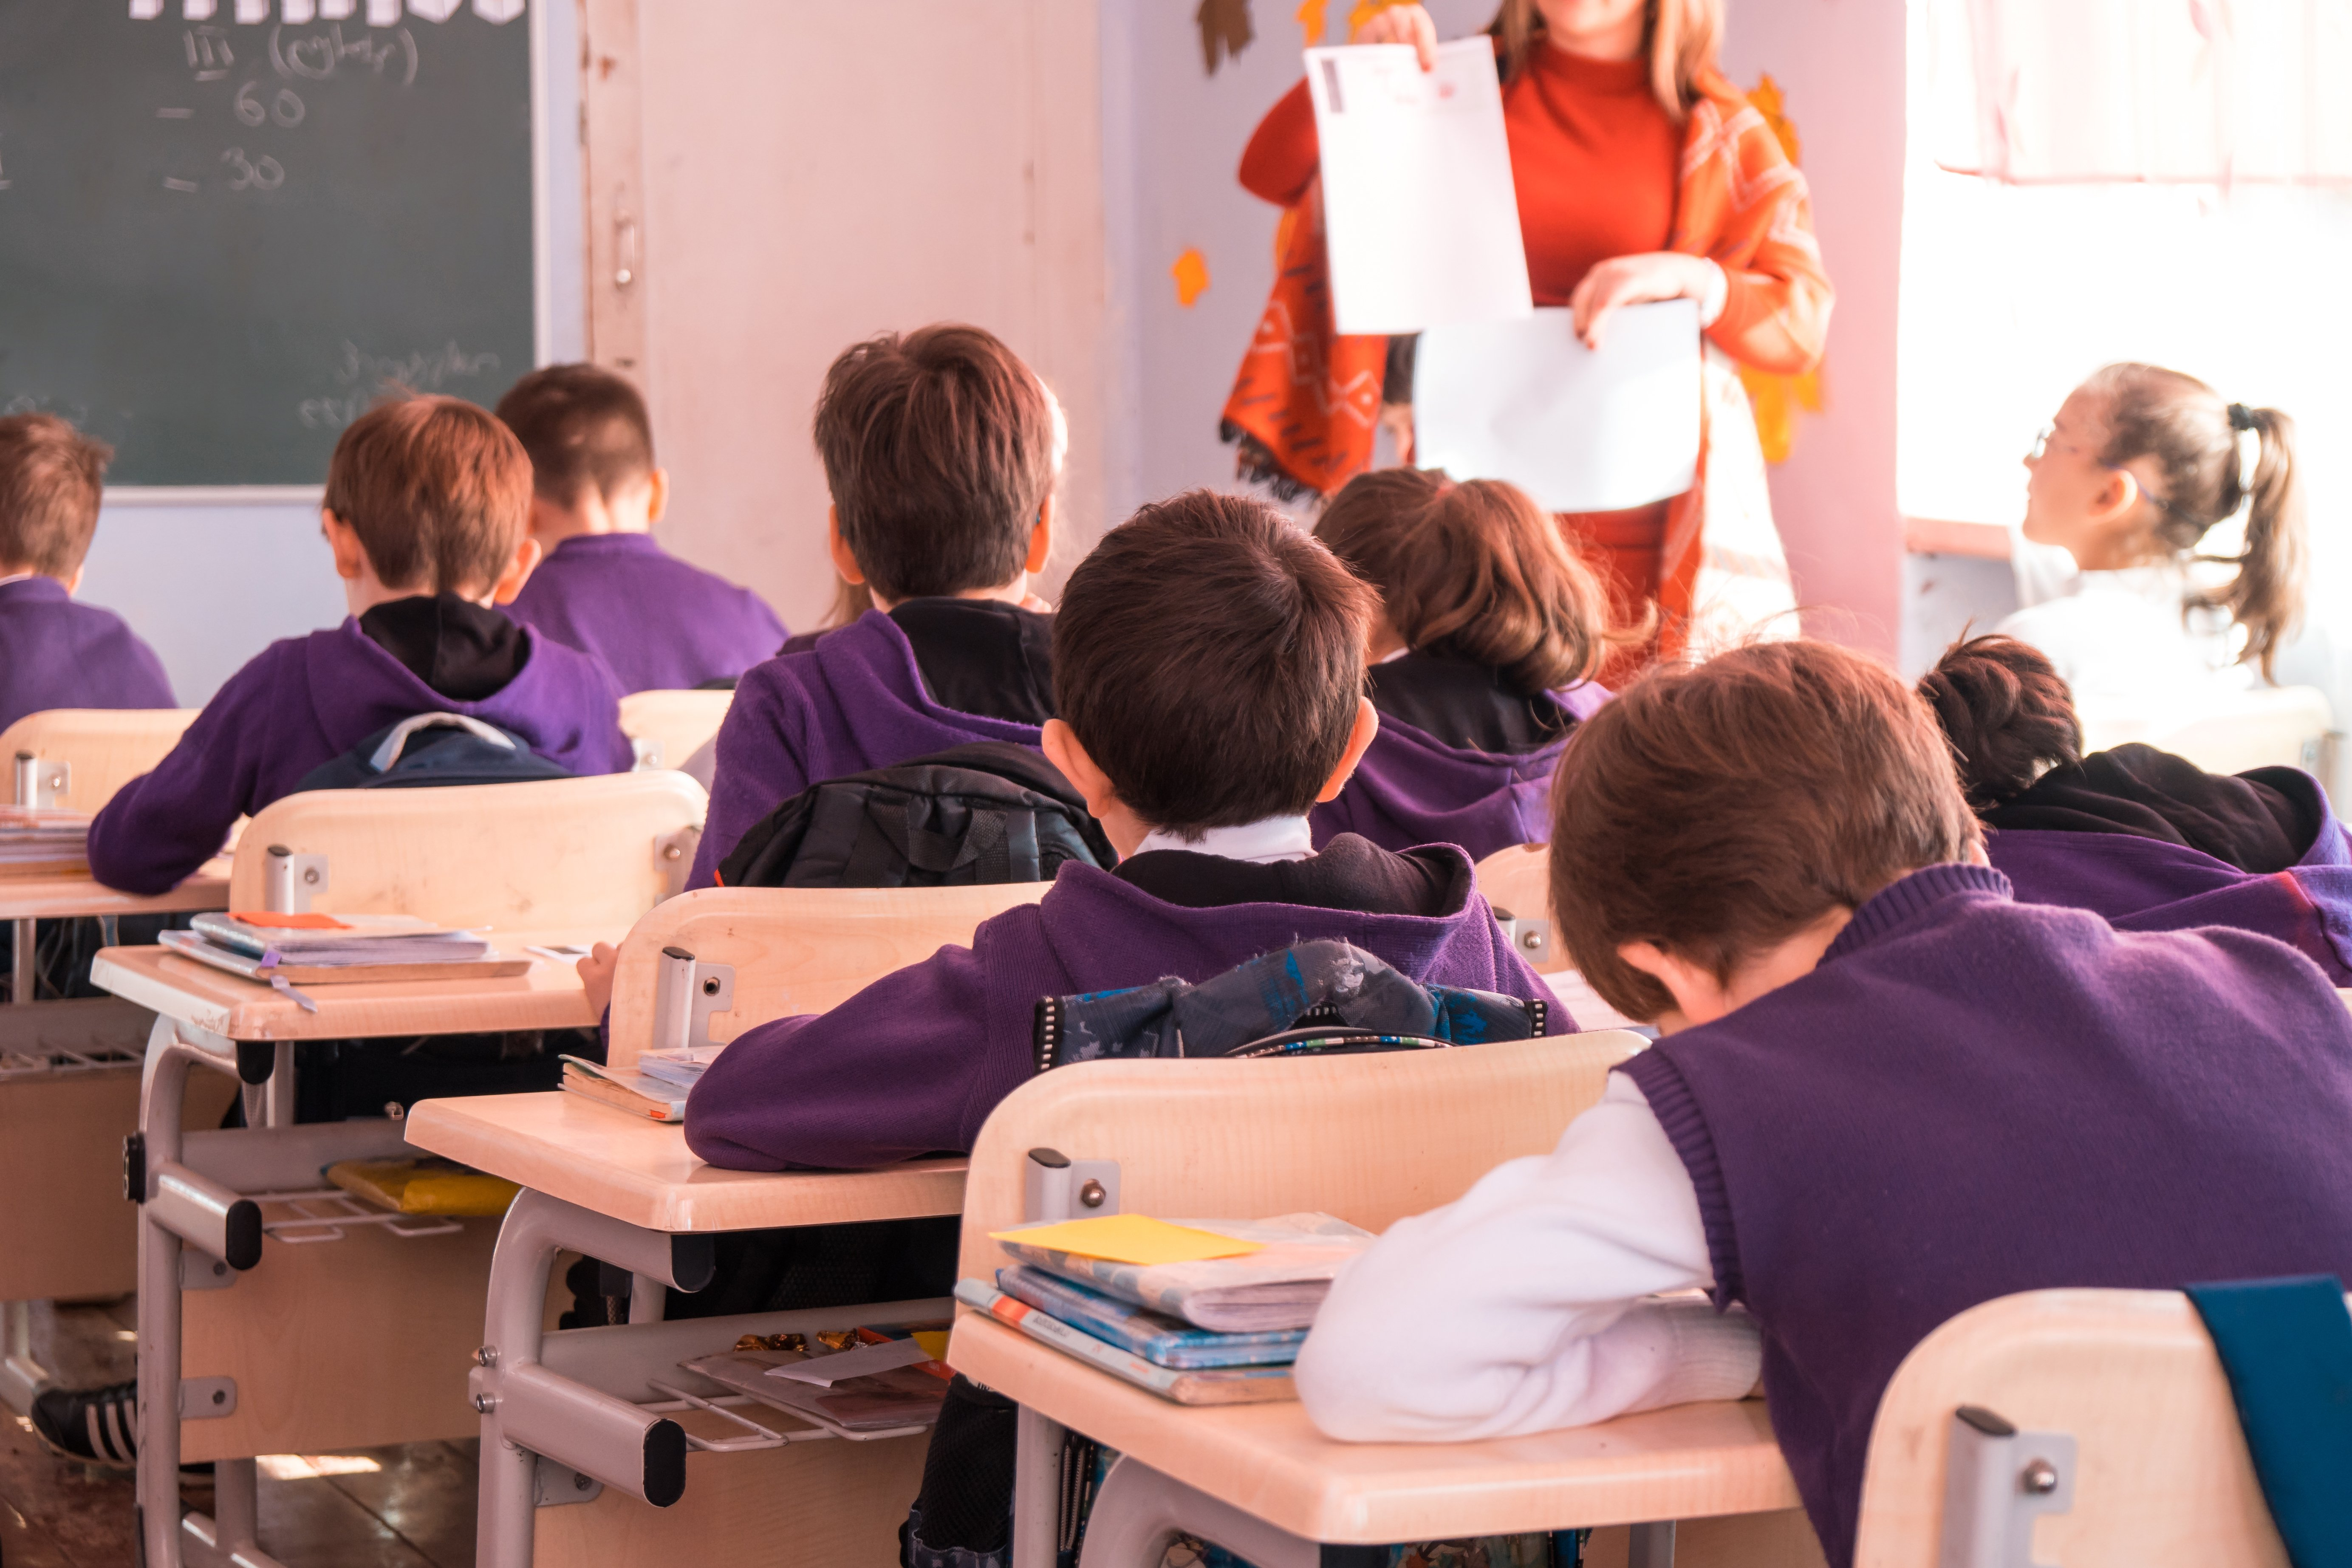 School children are participating actively in class | Photo: Shutterstock.com